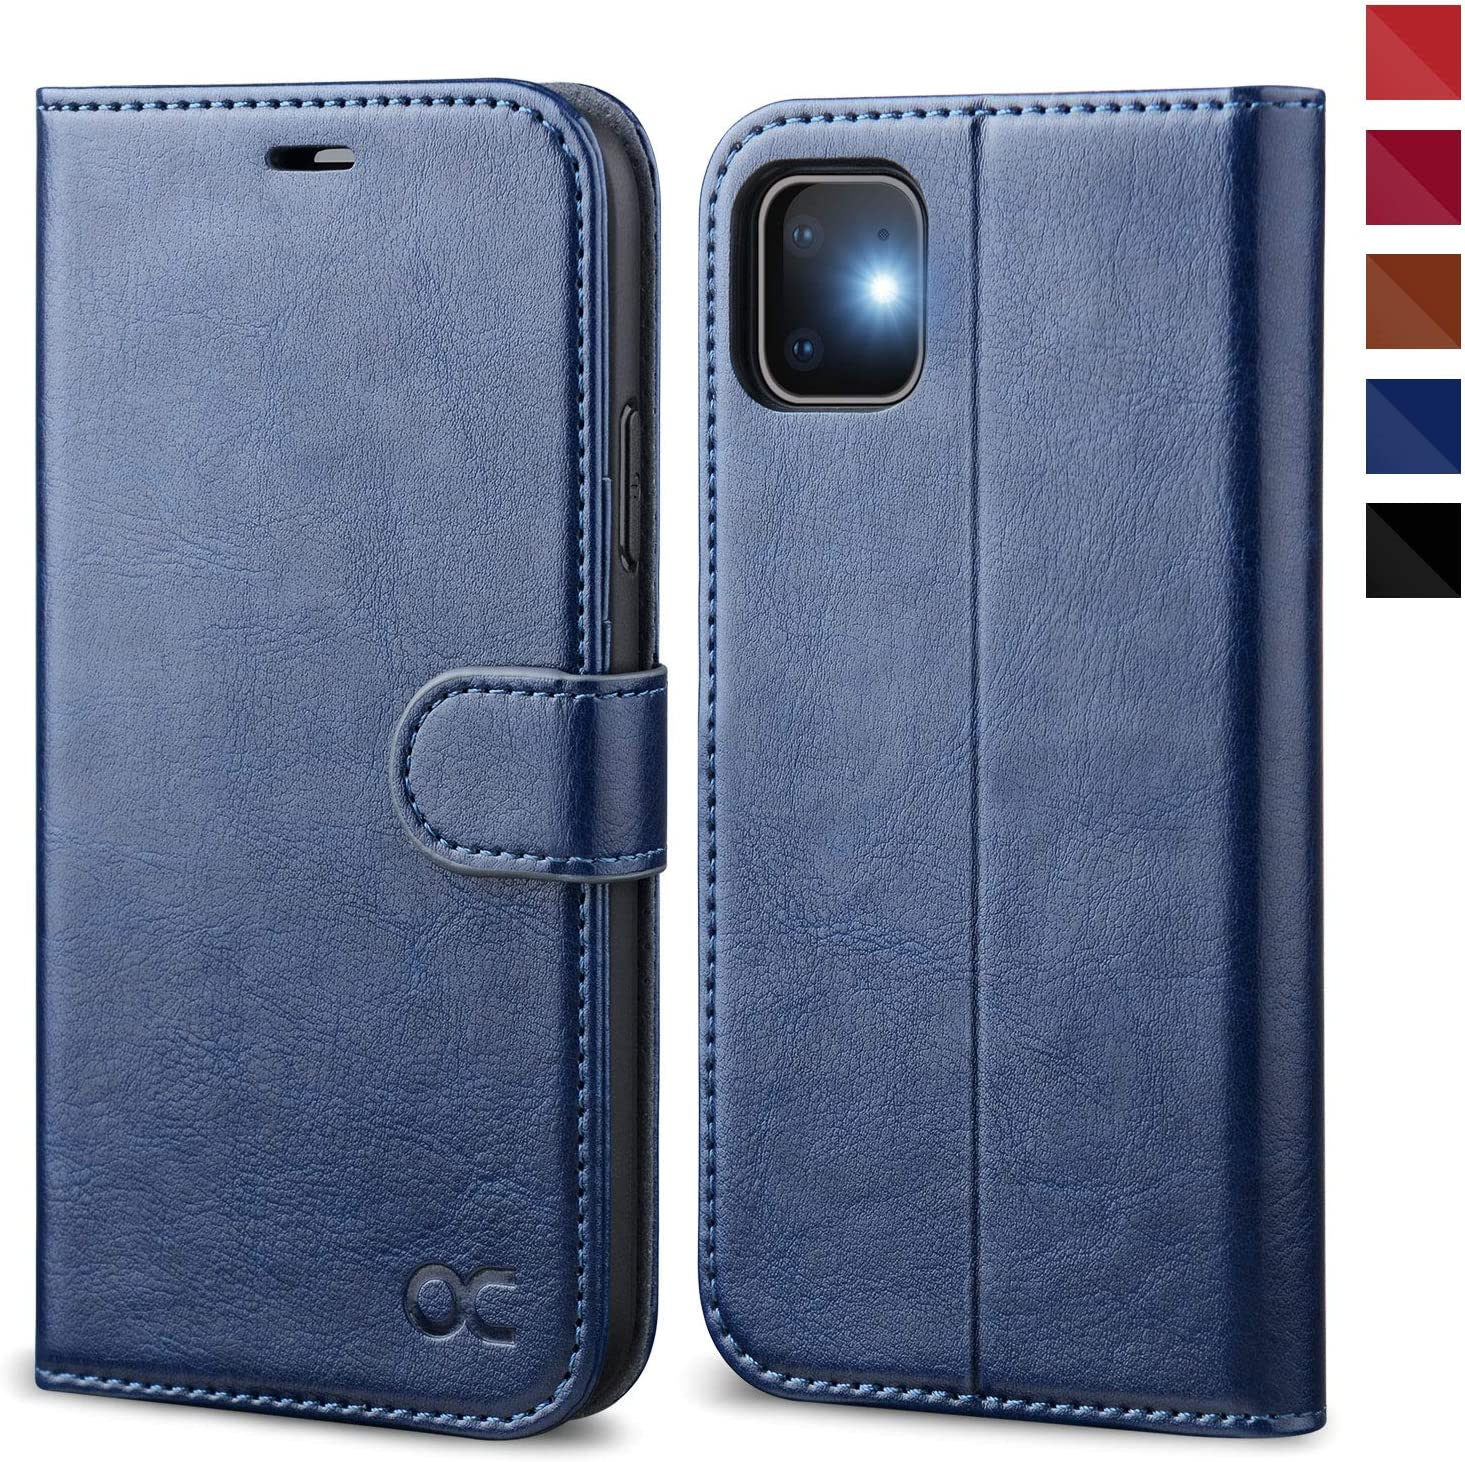 OCASE iPhone 11 Case, iPhone 11 Wallet Case with Card Holder, PU Leather Flip Case with Kickstand and Magnetic Closure, TPU Shockproof Interior Protective Cover for iPhone 11 6.1 Inch (Blue)